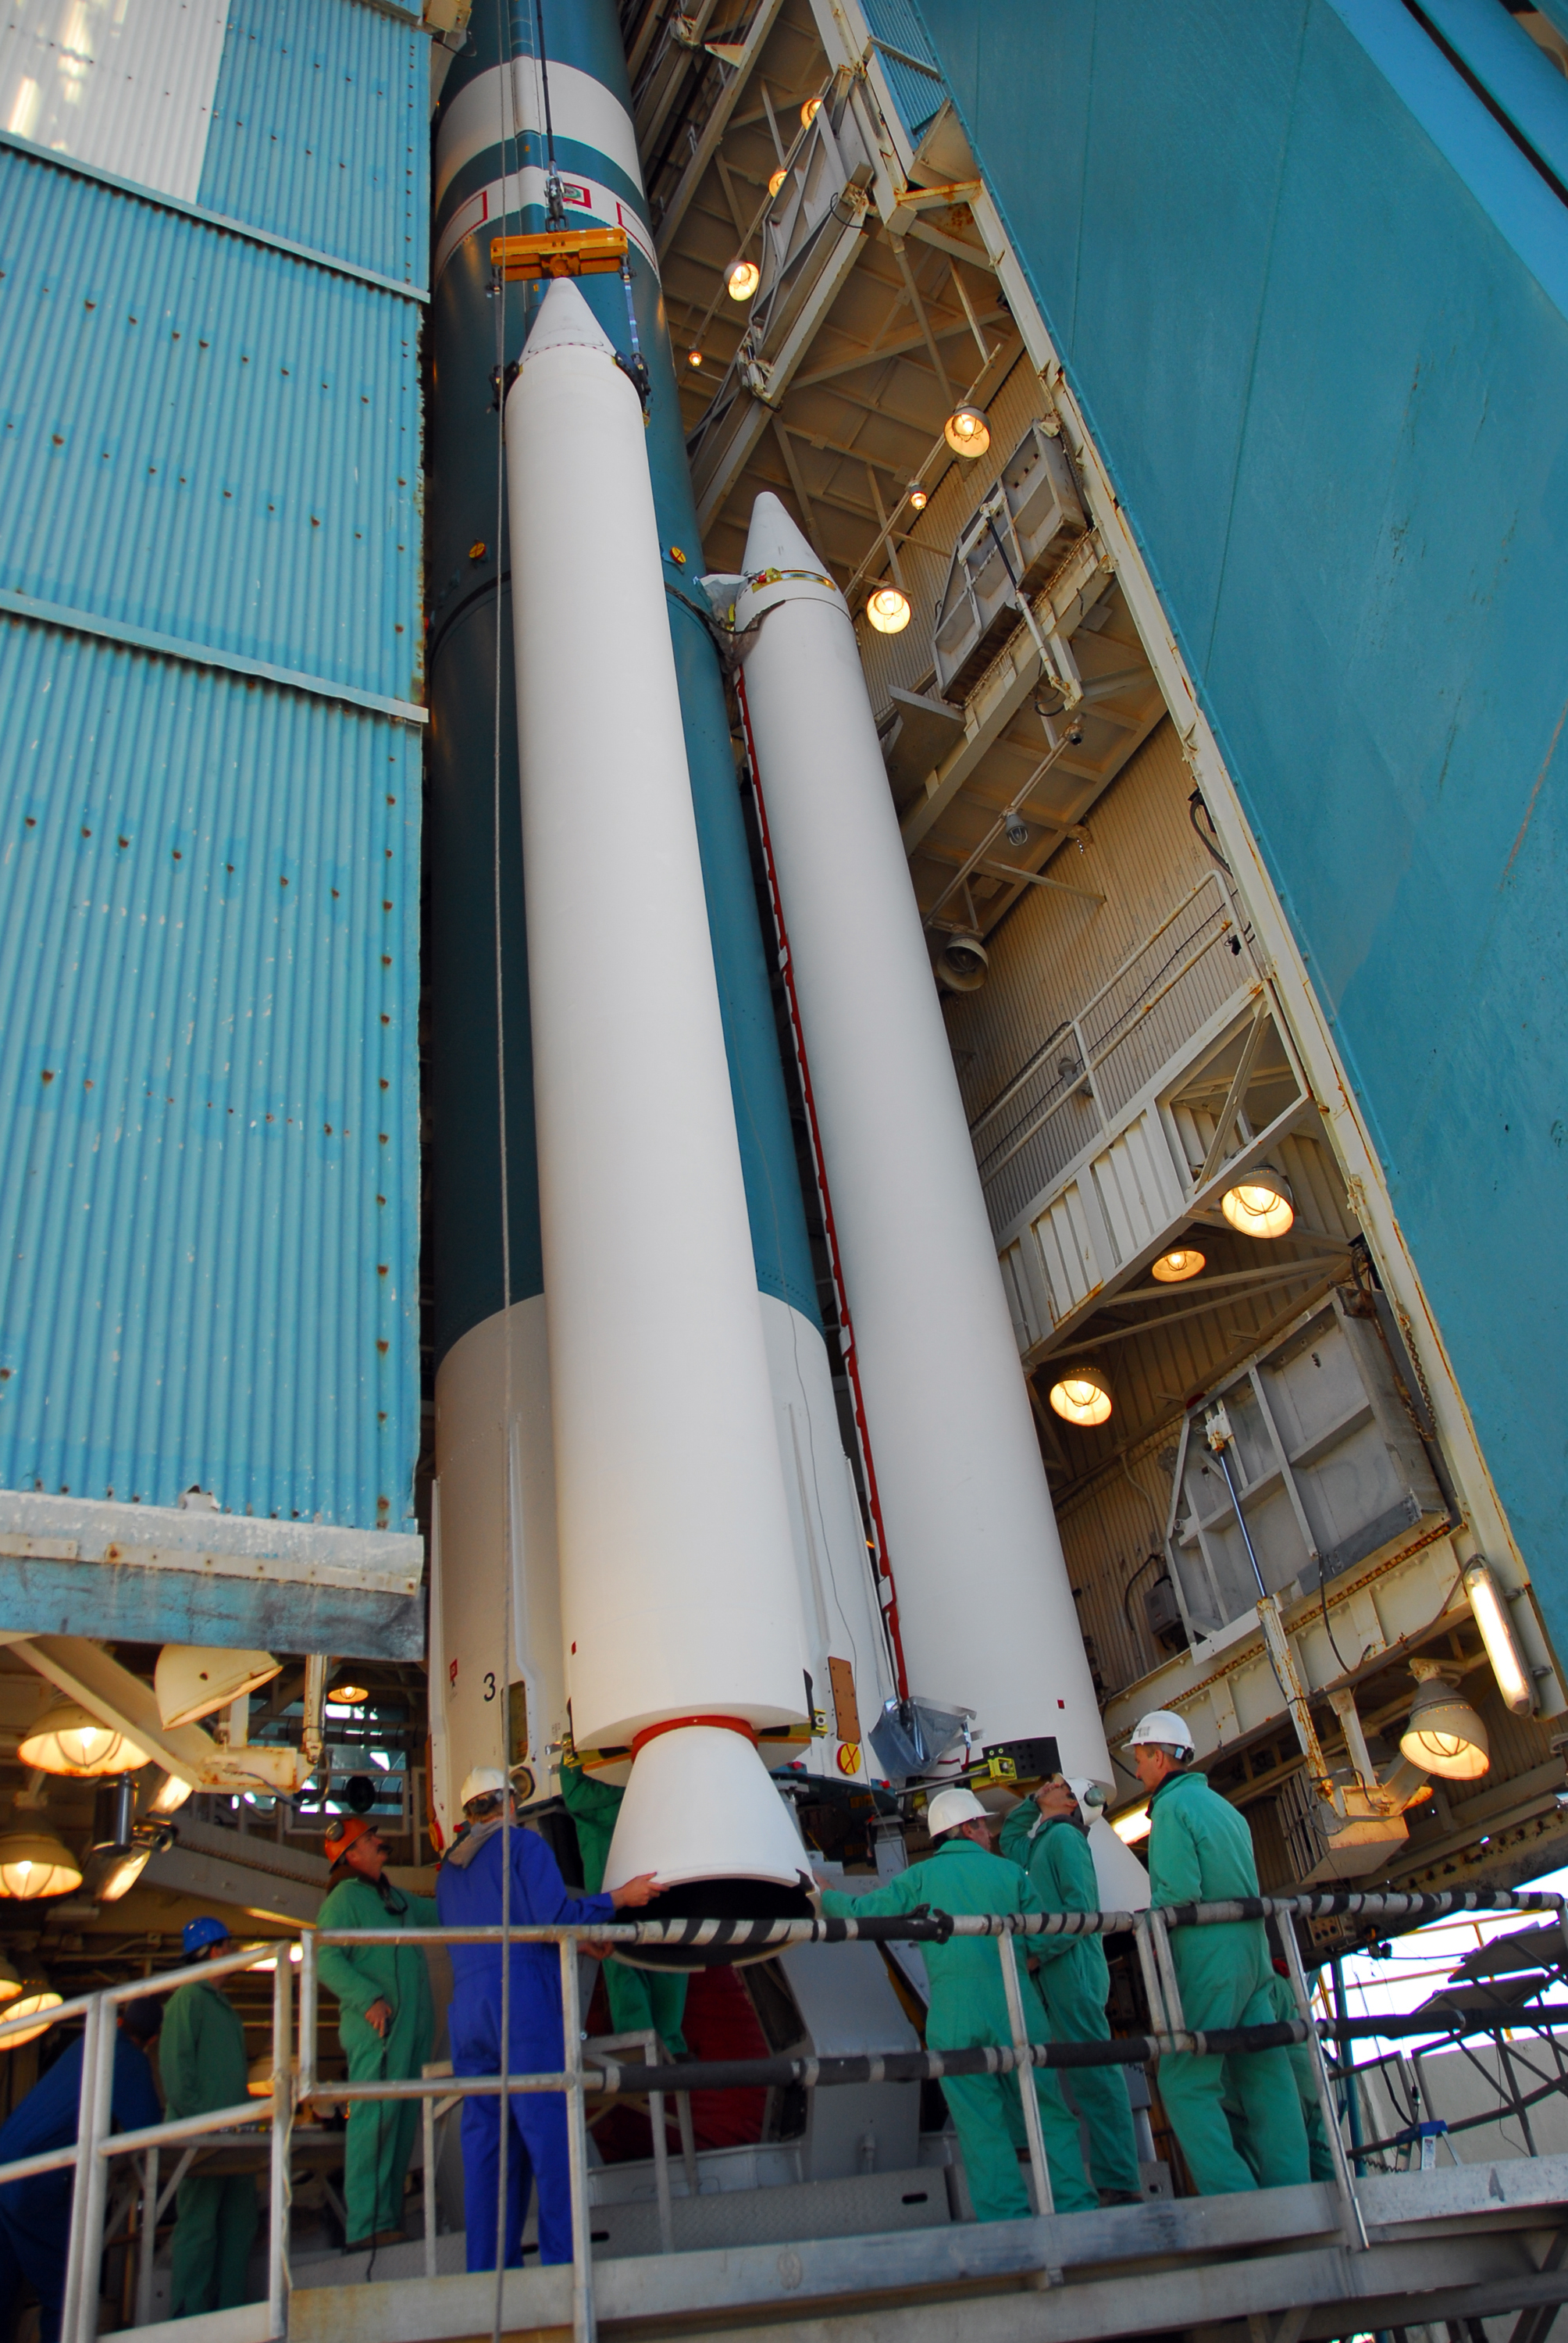 Attachment of one of three solid rocket booster to Aquarius SAC-D Delta II 7320-10C rocket